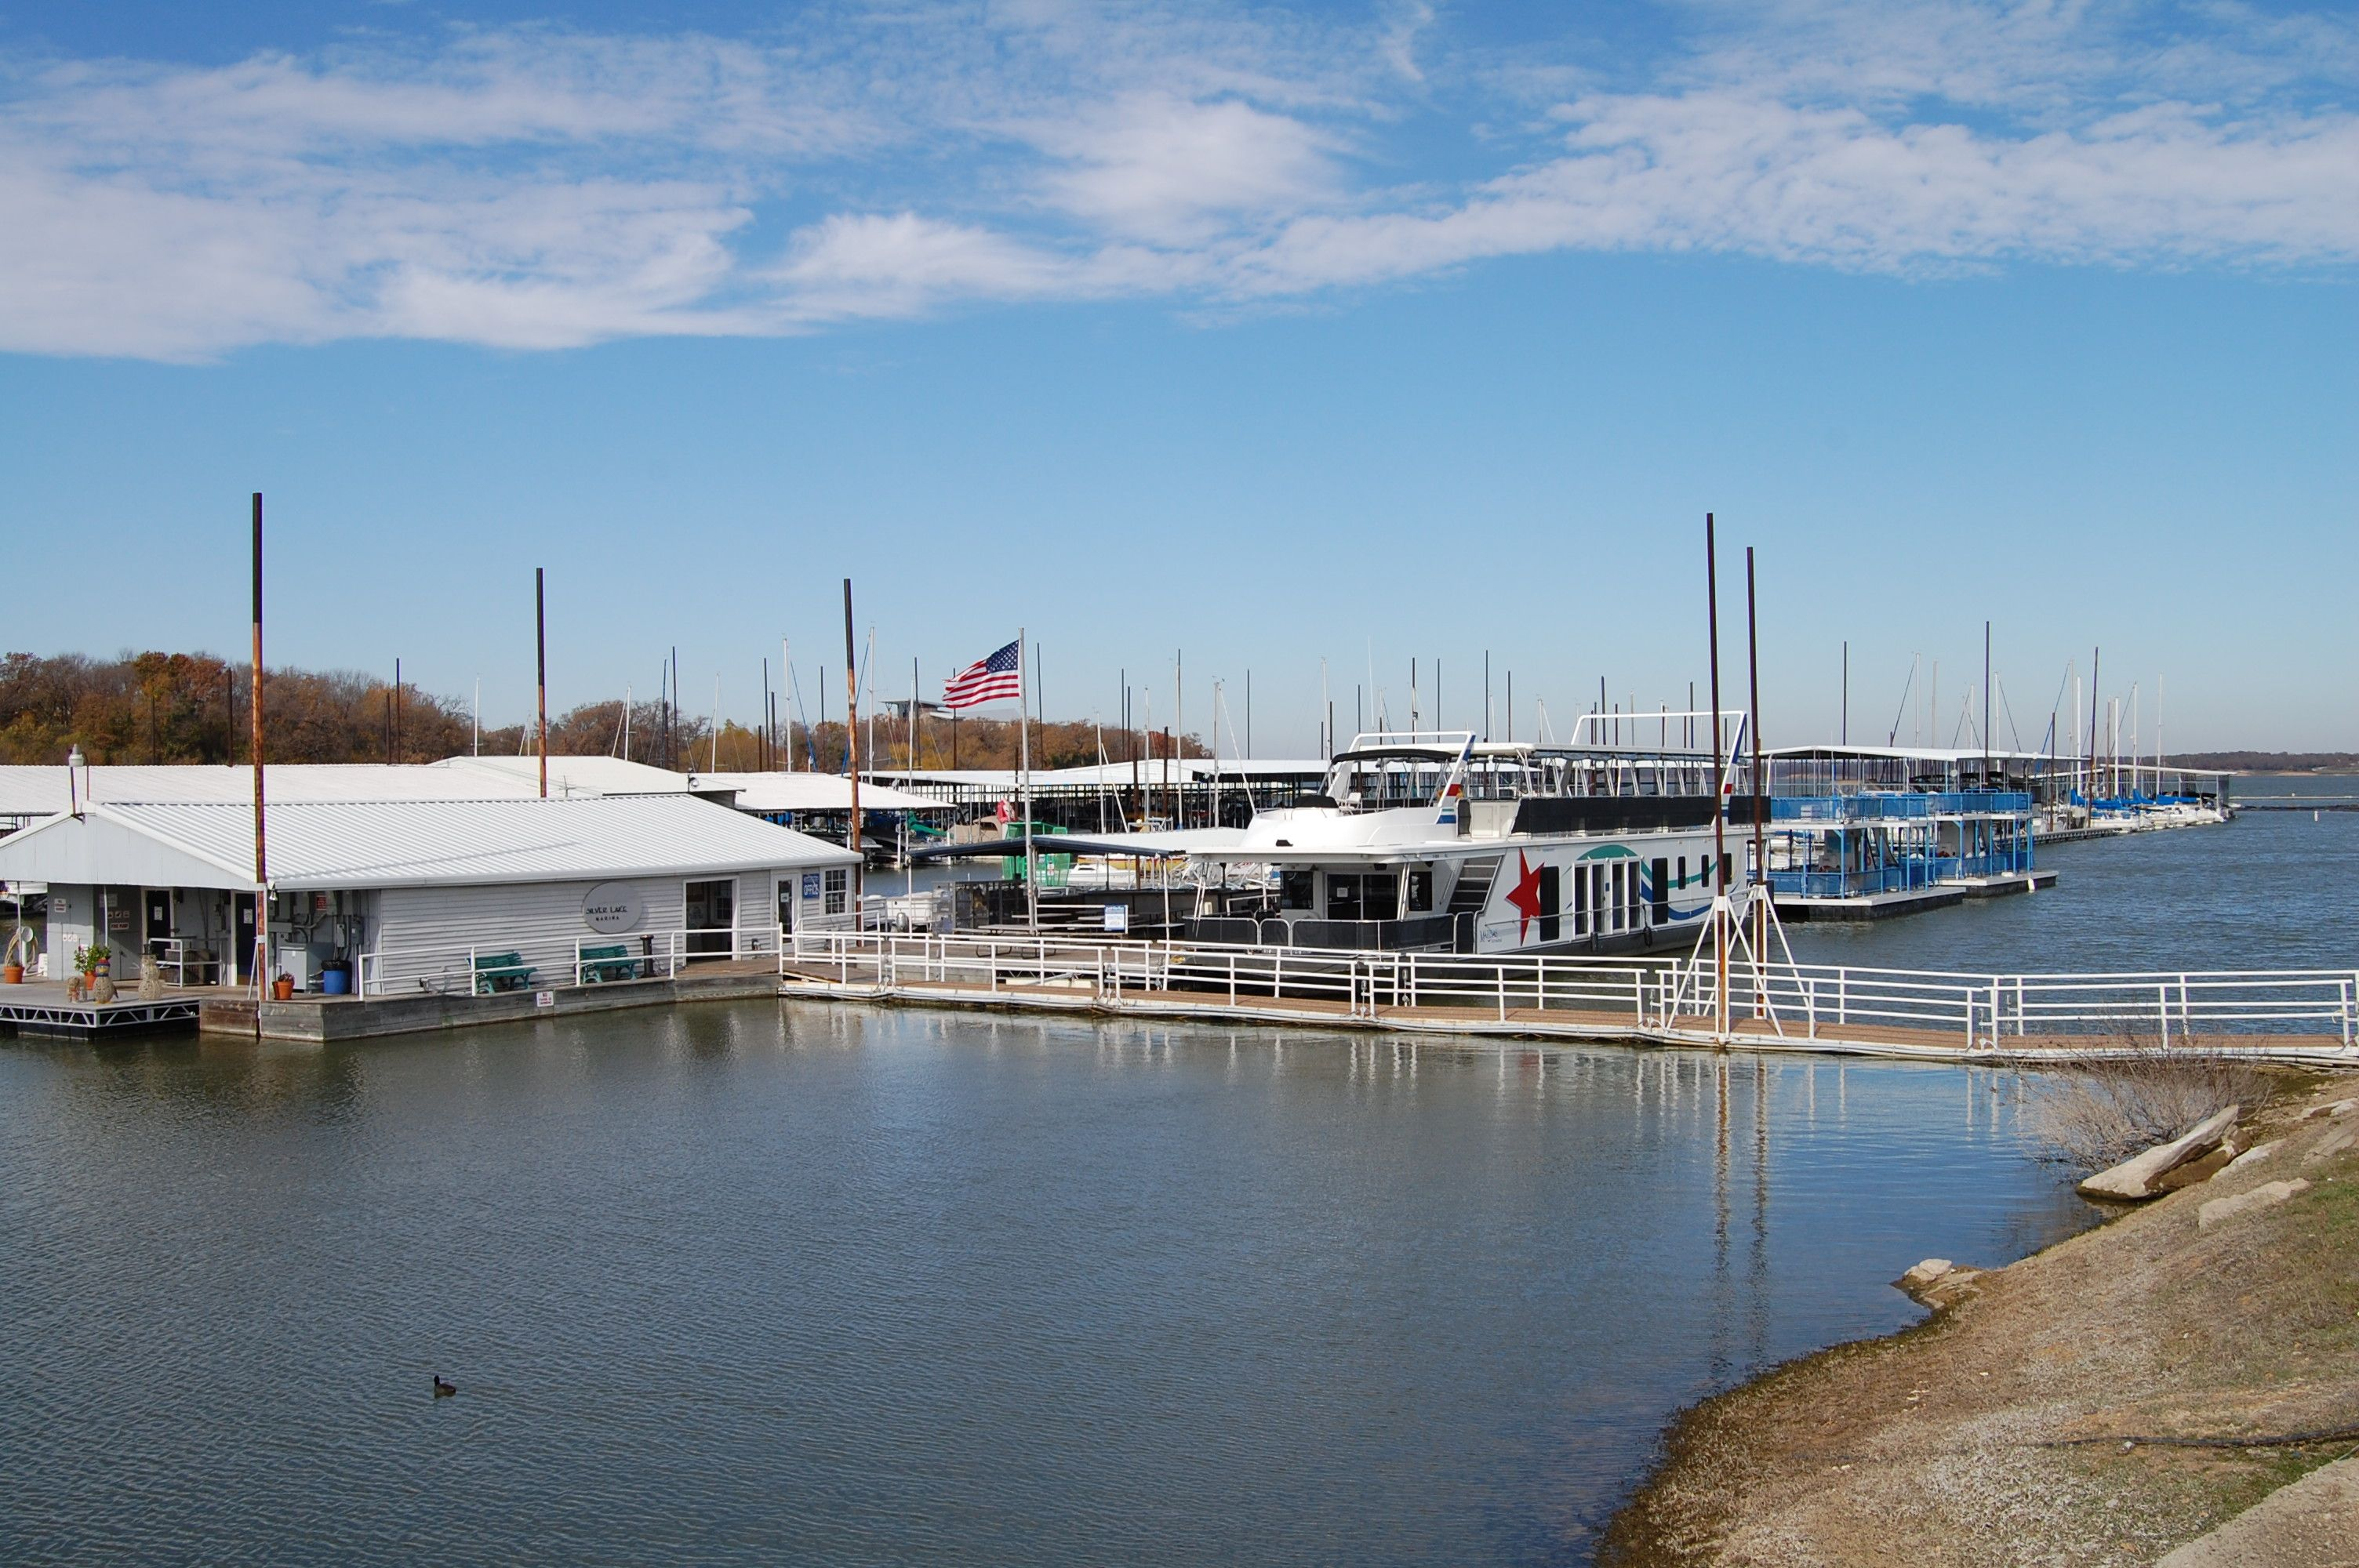 Silver Lake Marina, Grapevine, TX What's your favorite